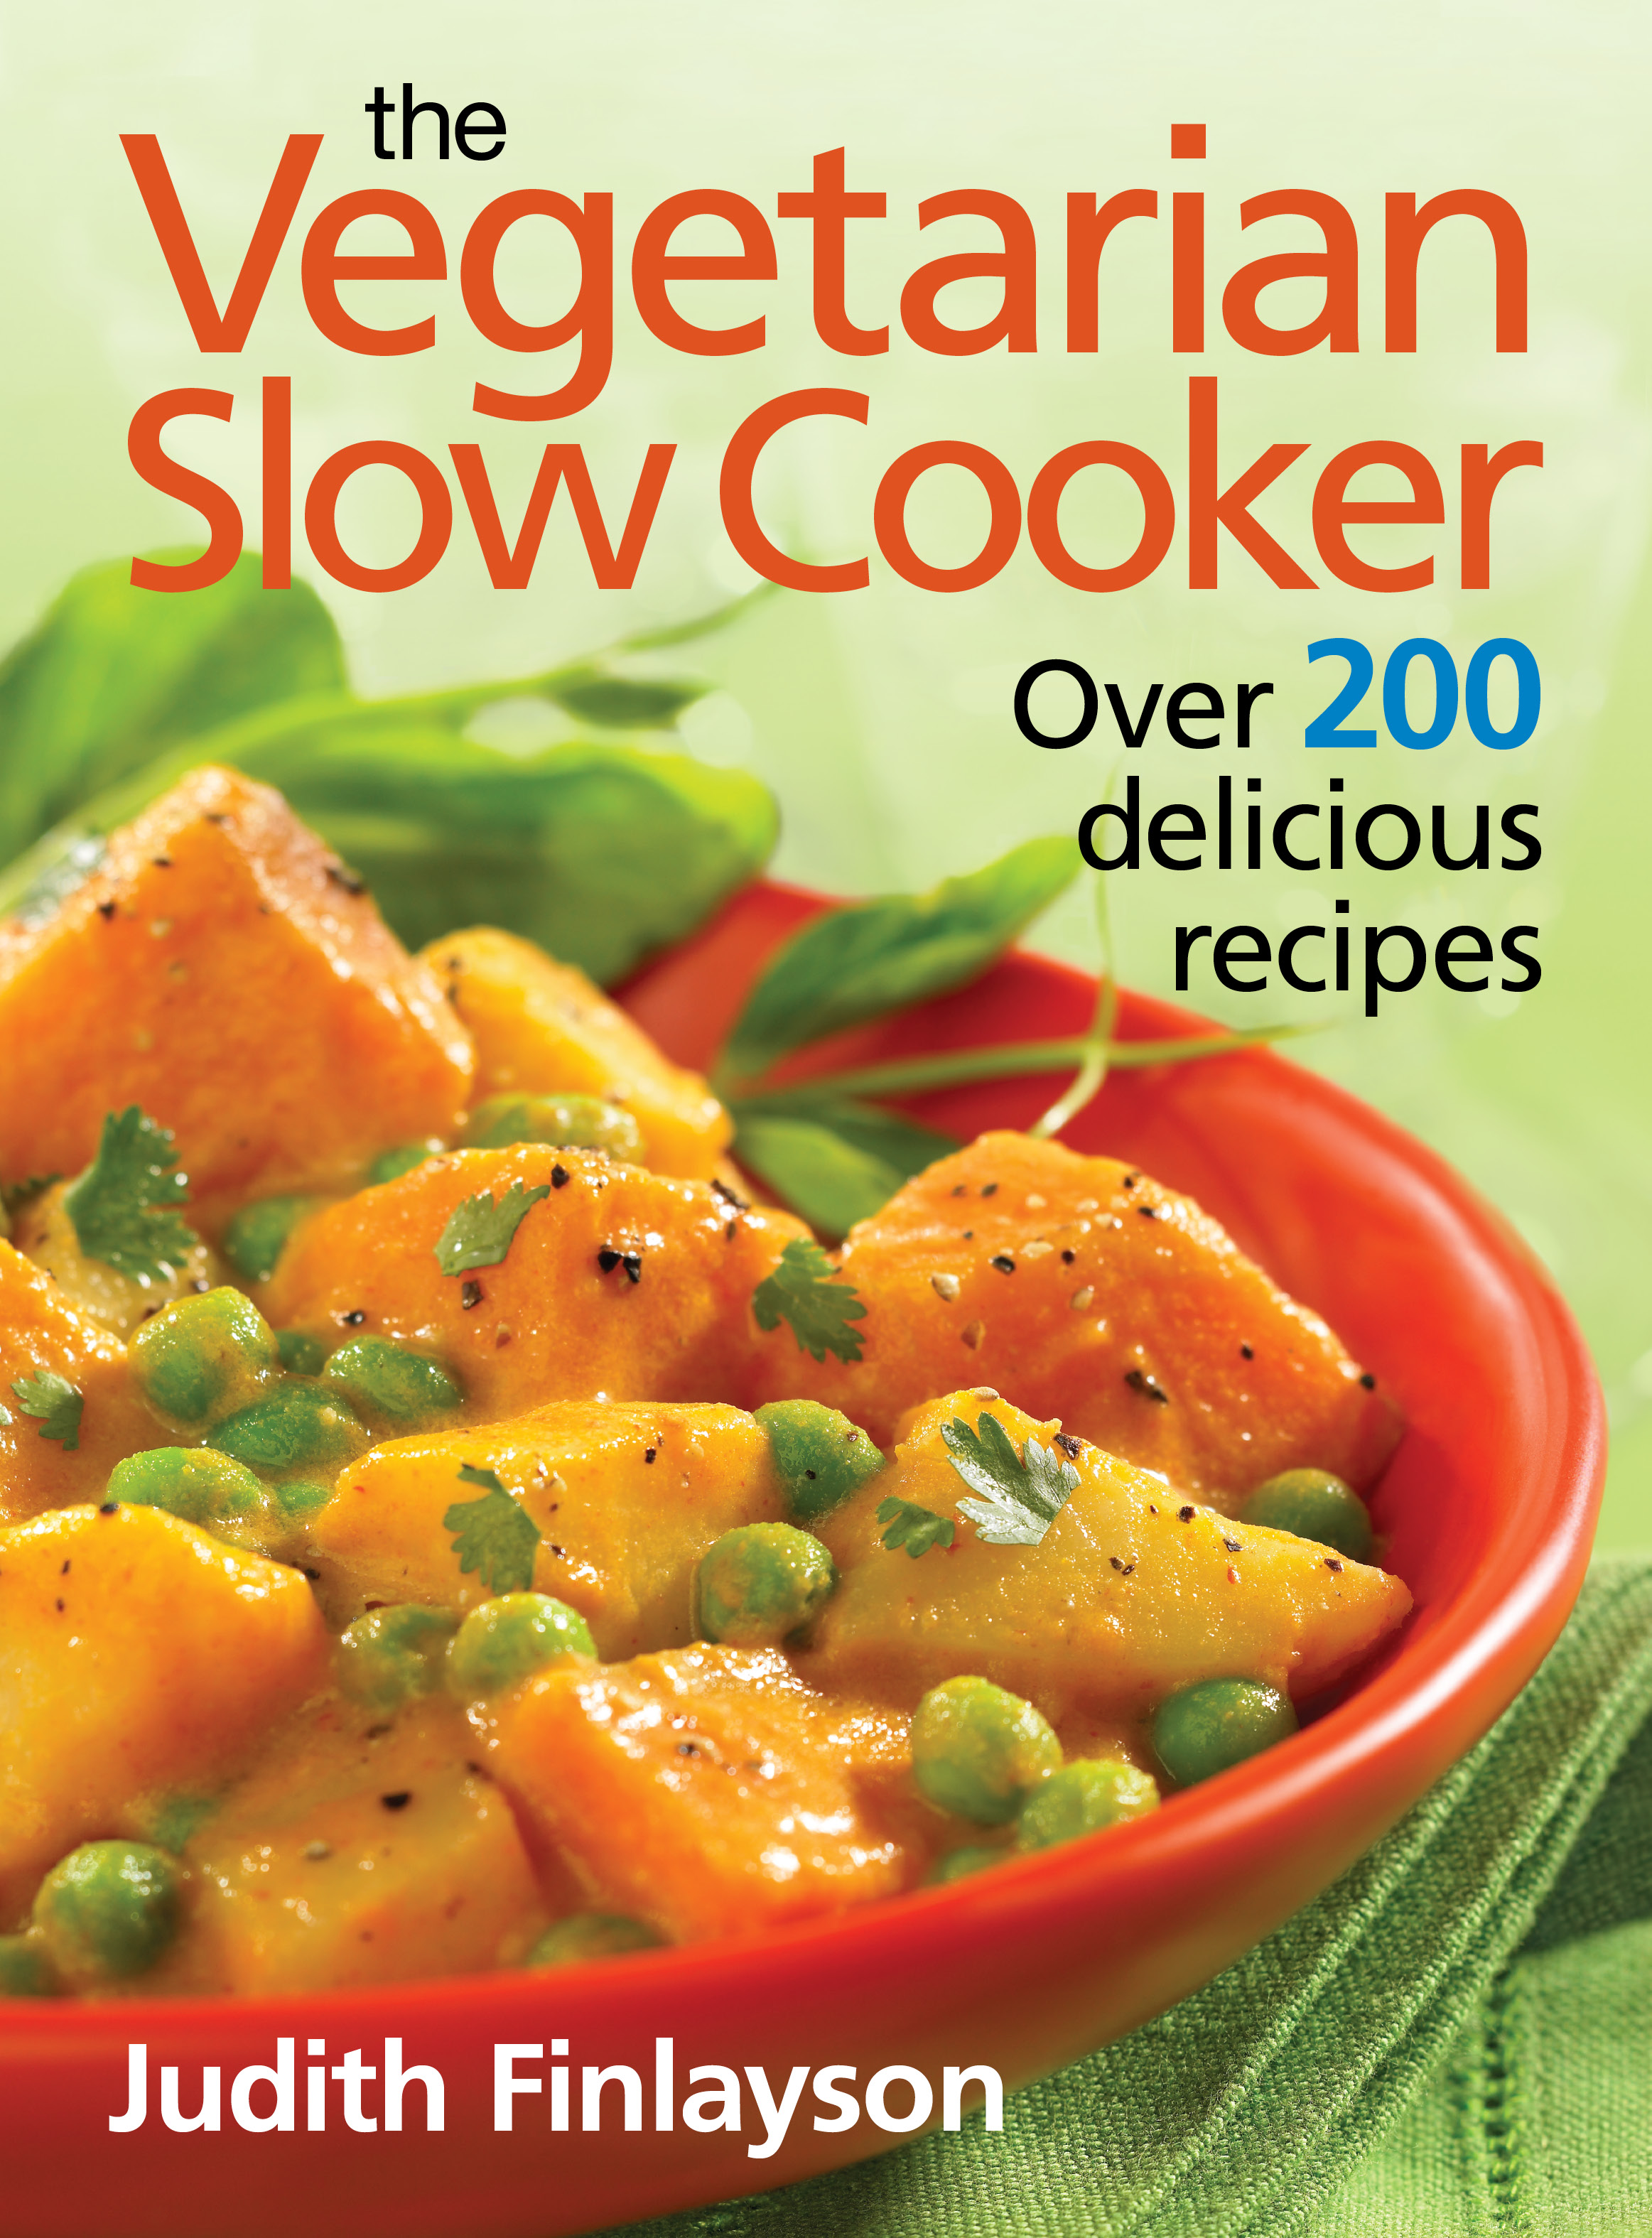 Slow Cooker Vegetarian Recipes If you're living the vegetarian lifestyle or just want to make some healthier meals, these slow cooker vegetarian recipes will do the trick. Ideas include salsa, chili, squash, oatmeal, stuffed peppers, vegetable soup, macaroni and cheese, sweet potatoes, beans, minestrone, casserole, stuffing, artichoke dip, glazed carrots, creamed corn, veggie lasagna and more.